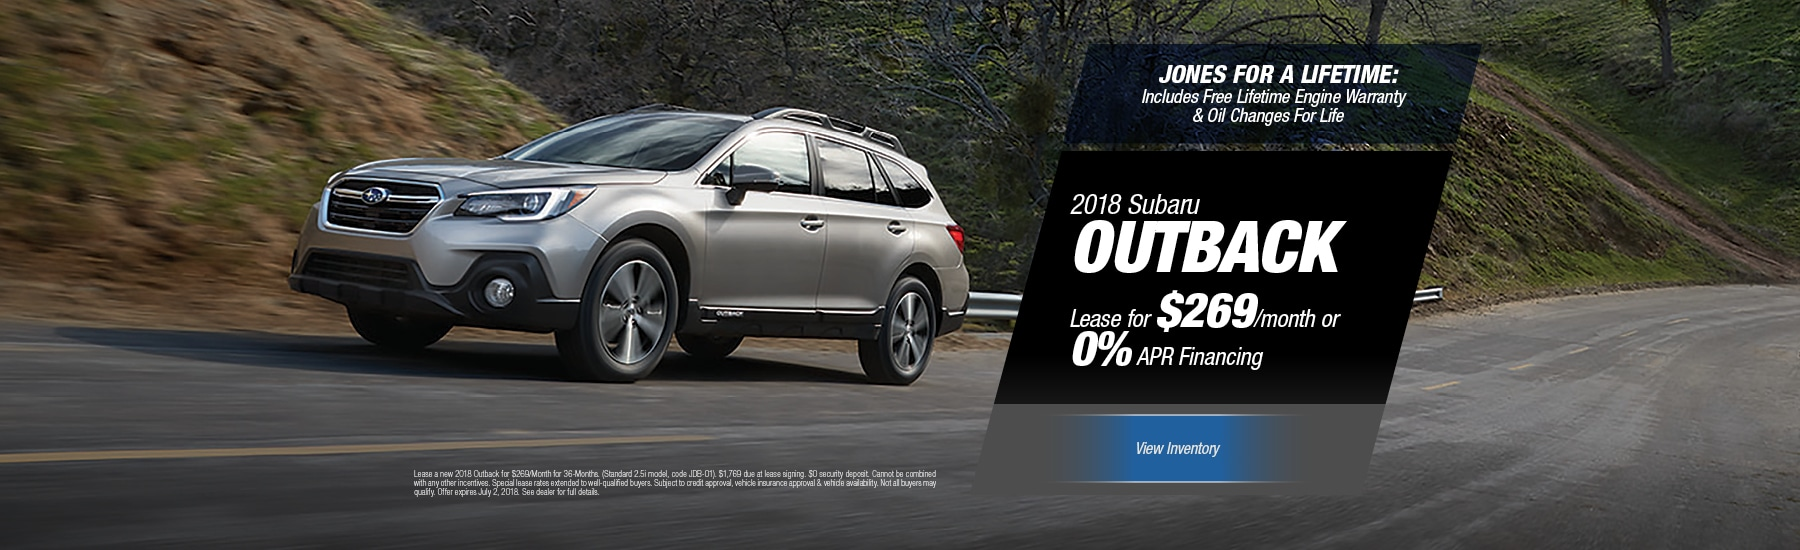 Outback Glen Burnie >> Bel Air Subaru Dealership | New & Used Subaru Car Dealer | Serving Baltimore, Glen Burnie ...